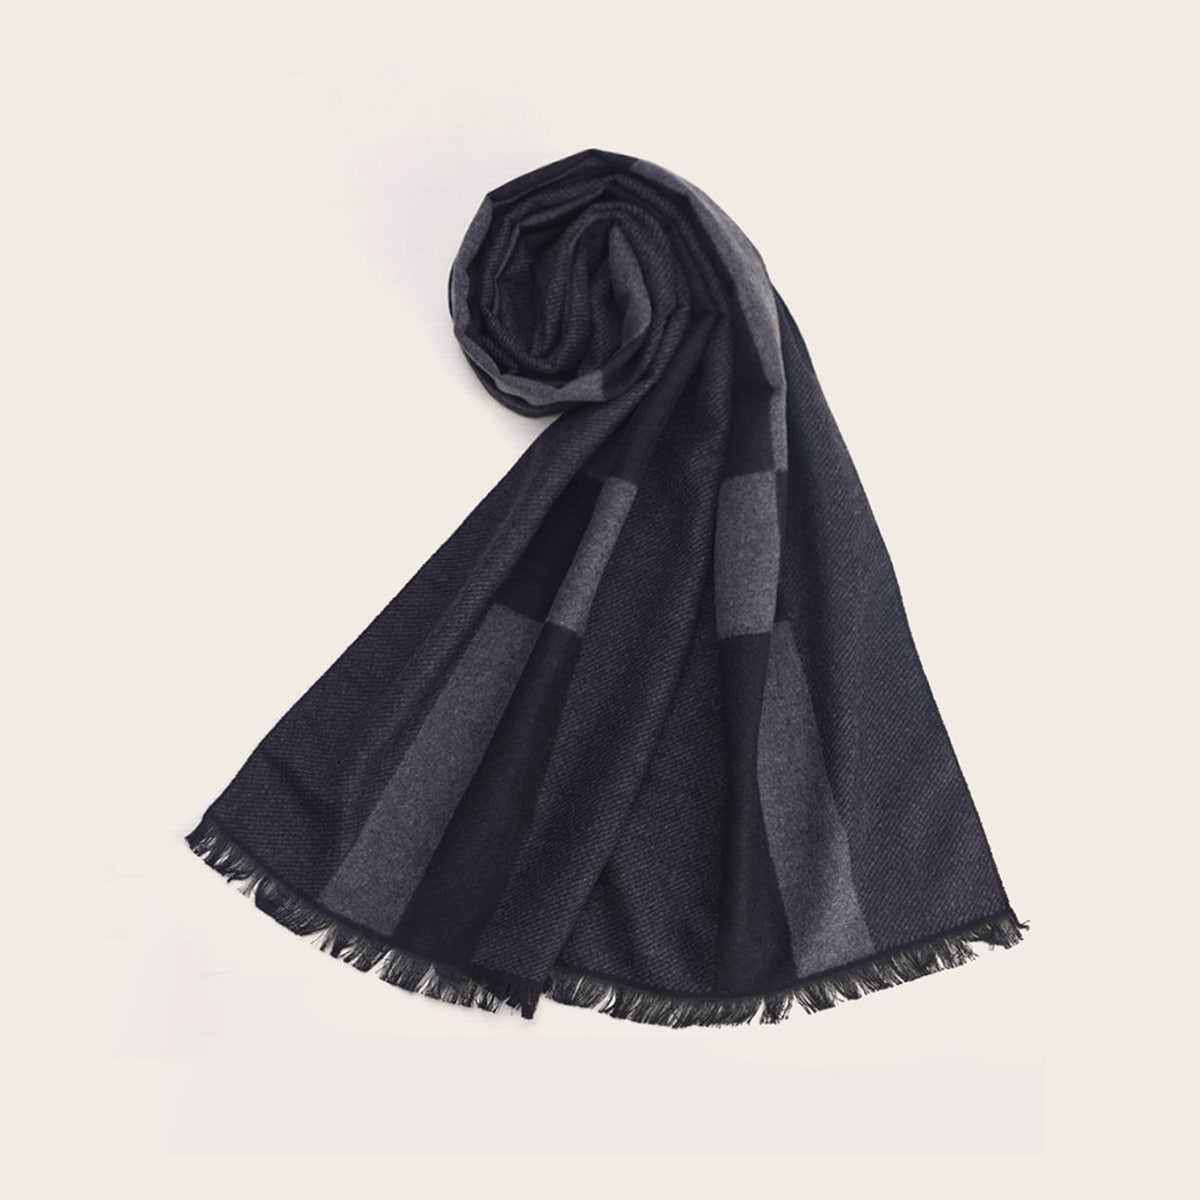 Guys Frayed Trim Plaid Scarf in Grey by ROMWE on GOOFASH